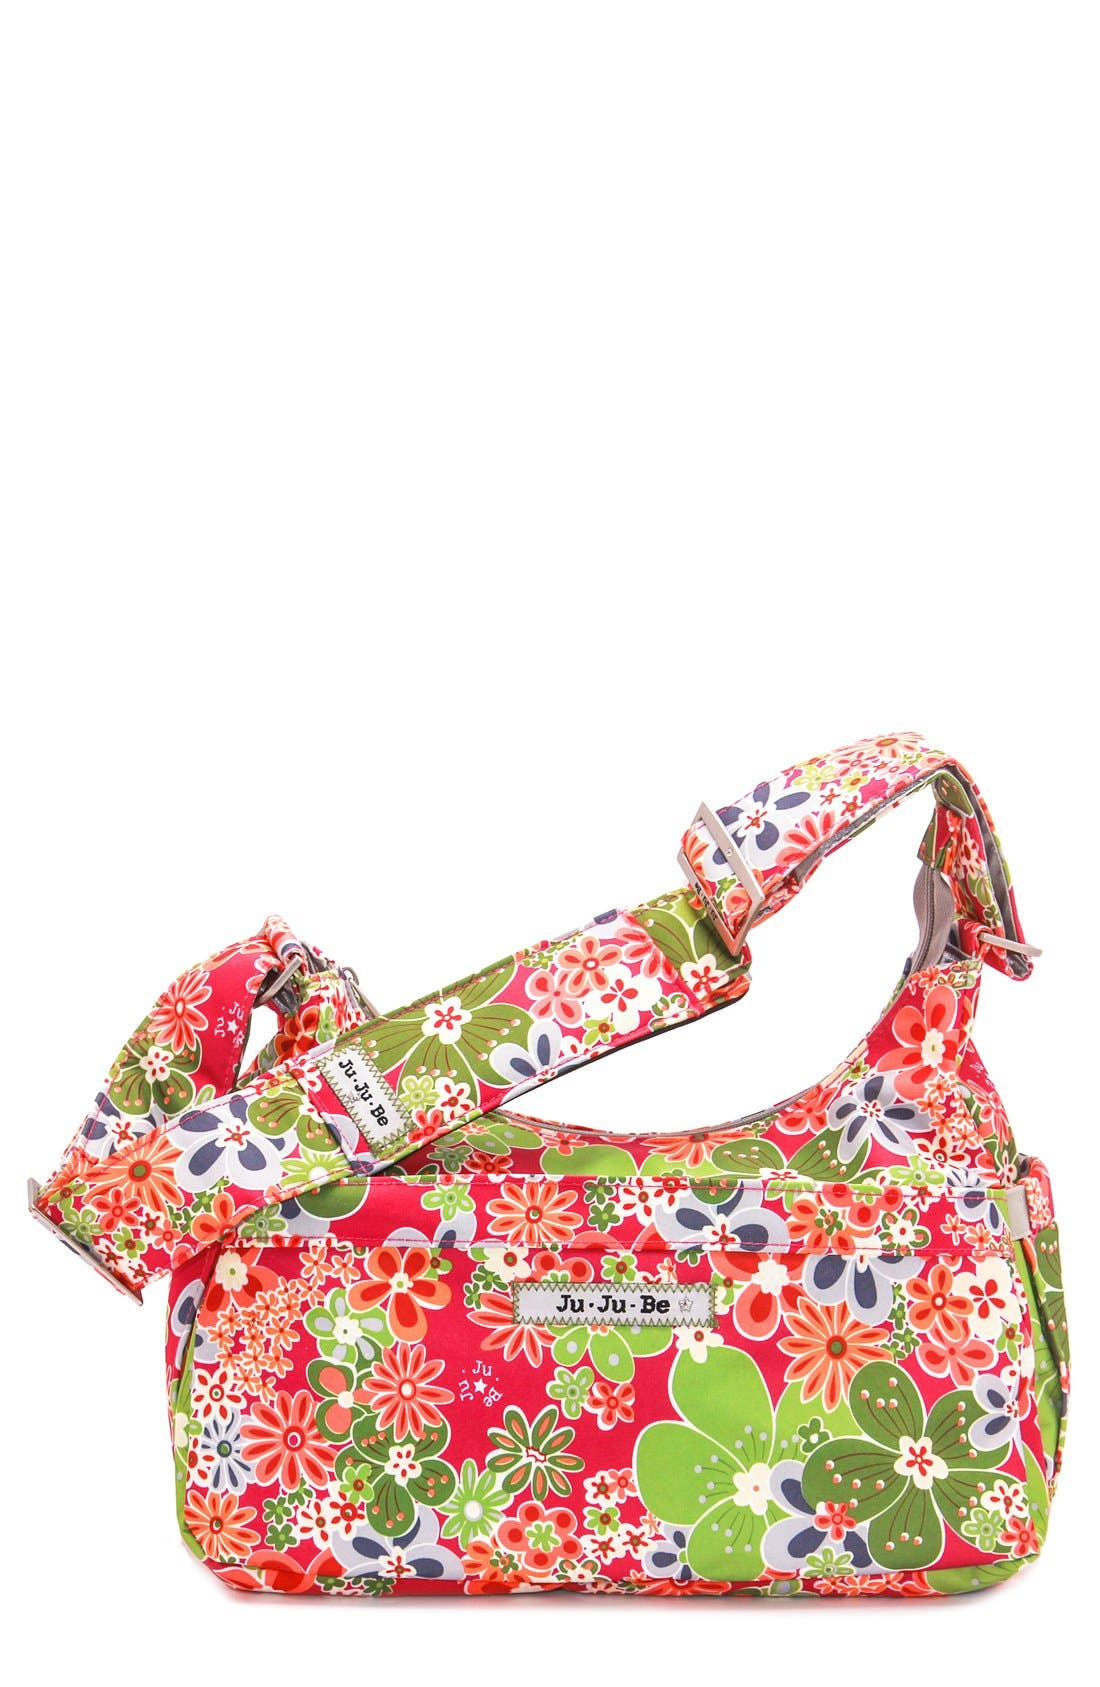 'HoboBe' Diaper Bag,                         Main,                         color, 670